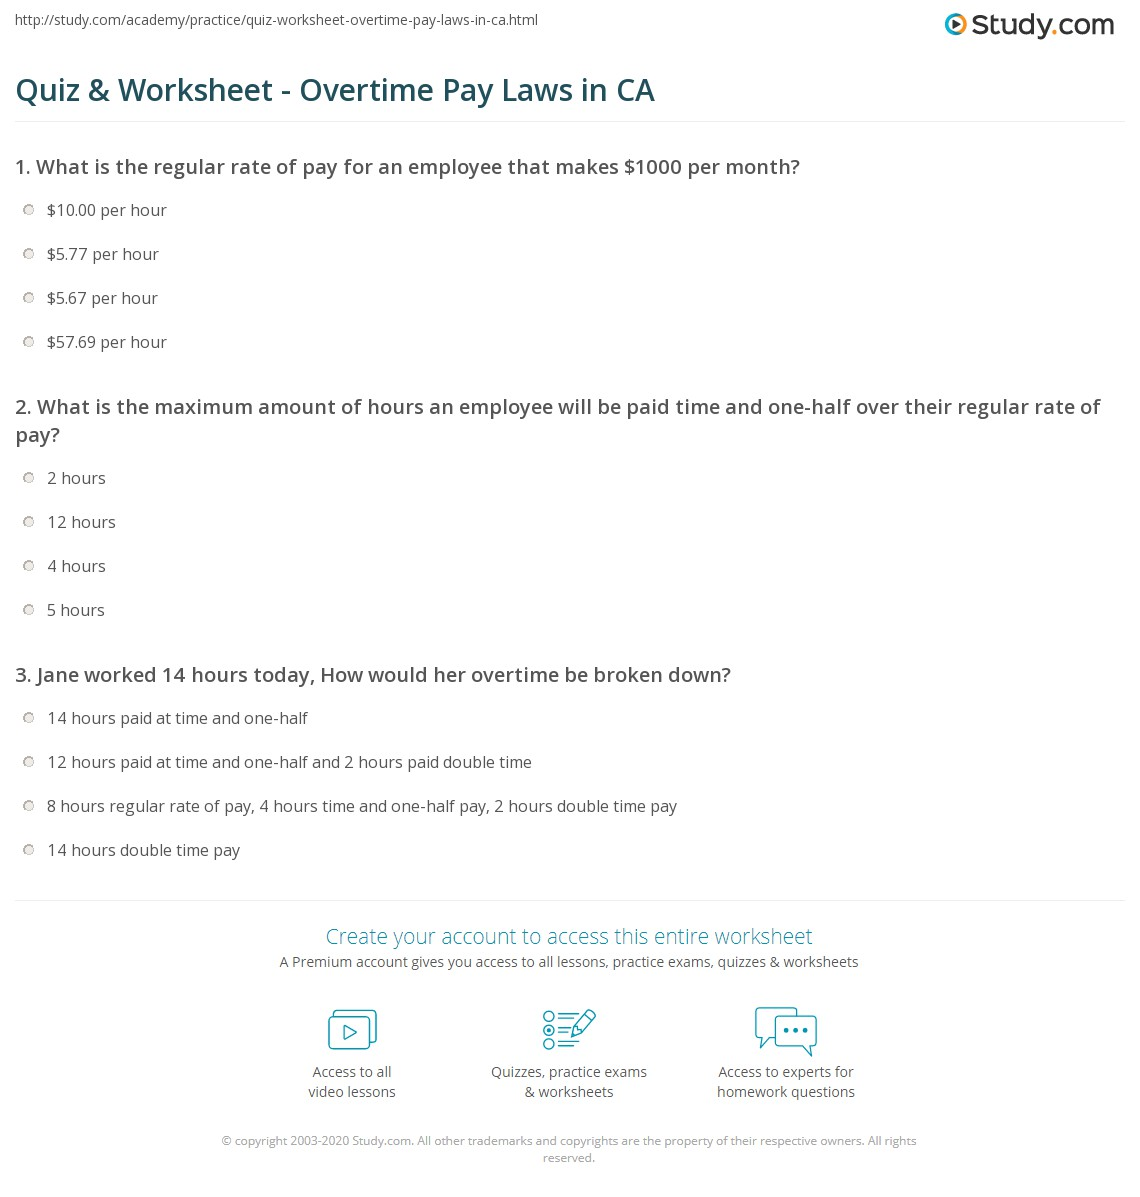 Worksheet Wage Garnishment Worksheet wage garnishment worksheet intrepidpath quiz overtime pay laws in ca study debt collection garnishment